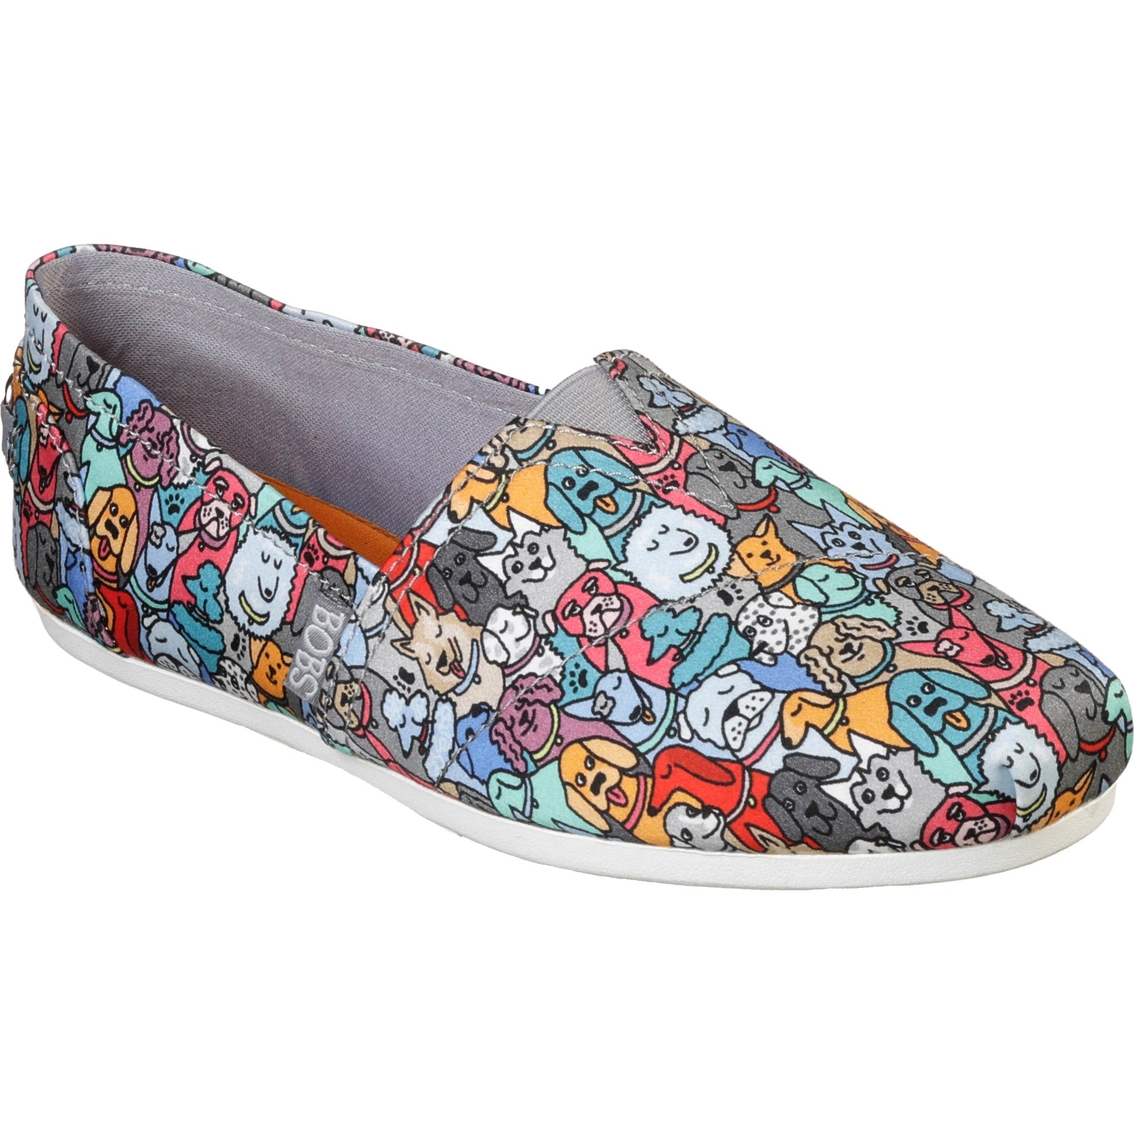 47a466db5048 Skechers Bobs Plush Woof Party Slip On Shoes